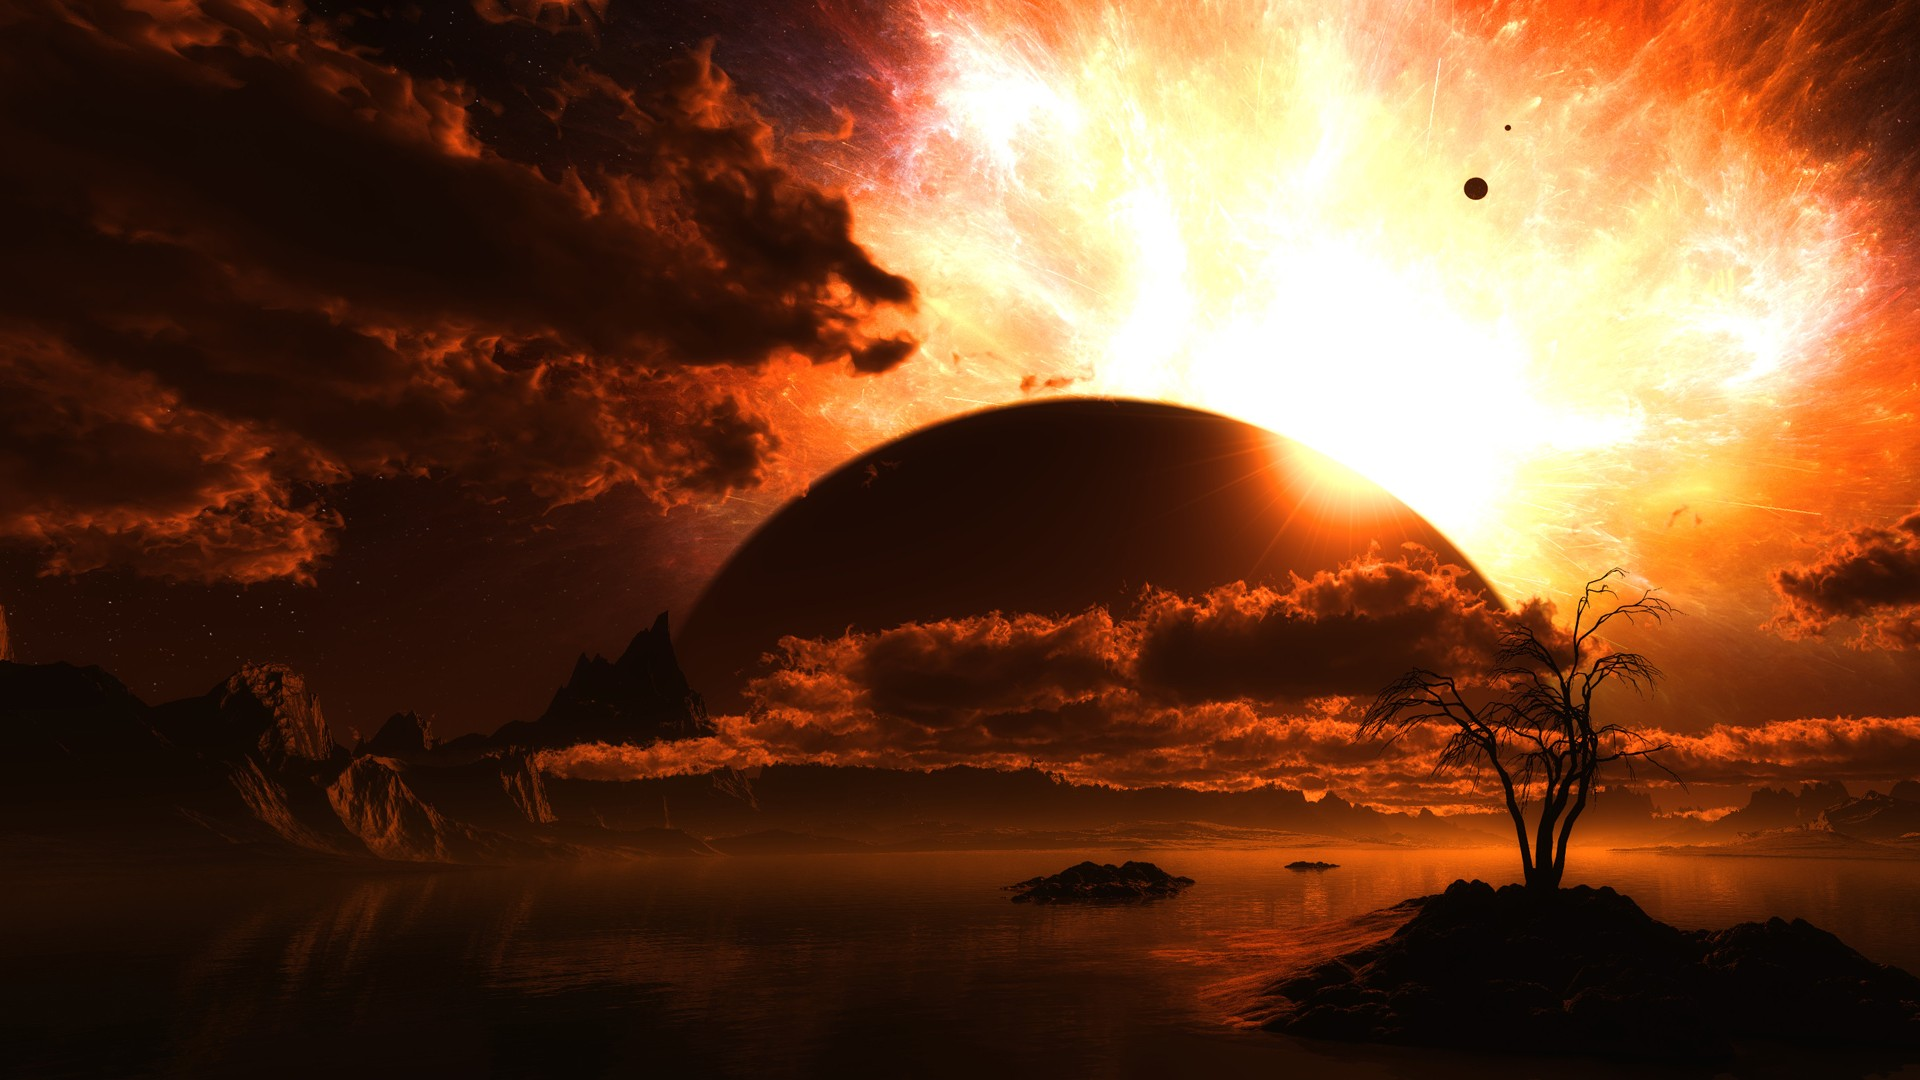 Hd Wallpaper Space 183 ① Download Free Awesome Backgrounds